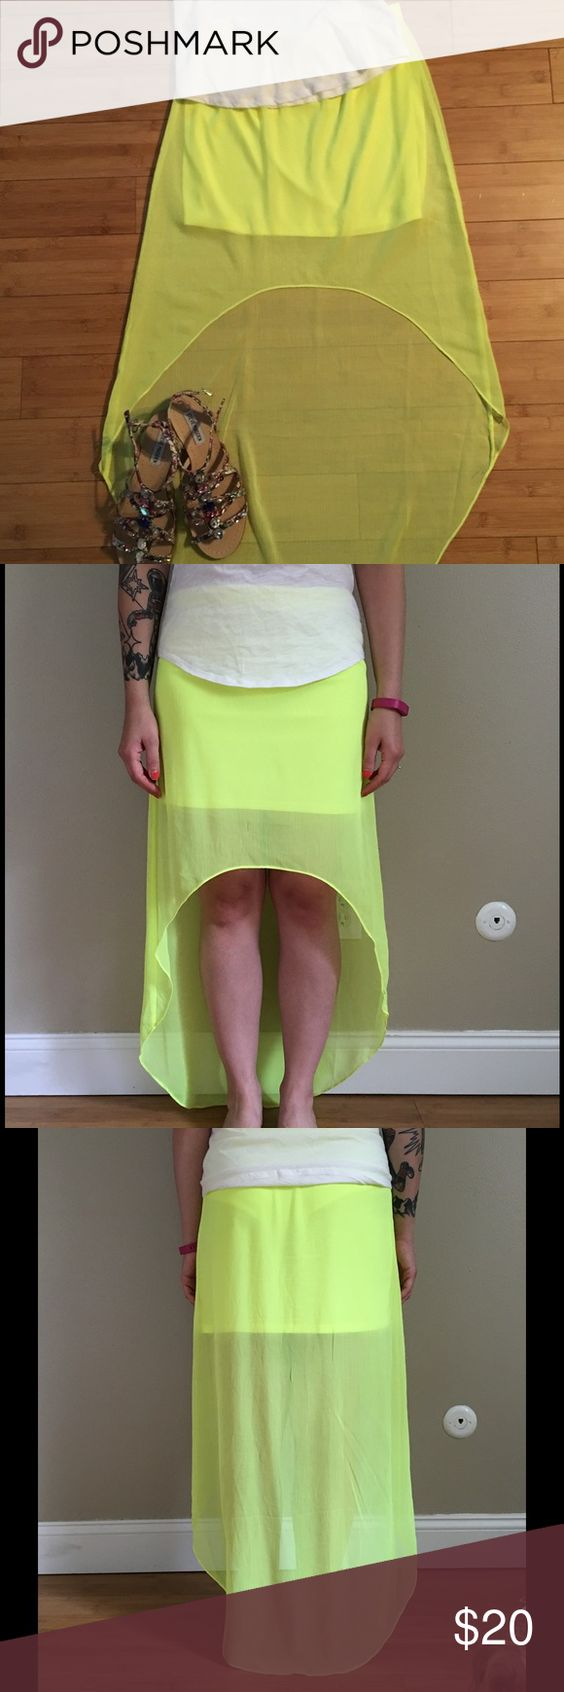 """⬇️REDUCED❗️Express Neon Hi-Low Maxi Skirt Neon yellow skirt. Color is most like modeling photos. Hi-low style. Sheer with mini skirt lining. Elastic waist. Can fit a small as well. Worn a few times and in excellent condition, except for a tiny stain the size of a pen dot on front near elastic. Extremely hard to see. Approximately 13 1/2"""" across the waist when laid flat. Approximately 16"""" at shortest point and 39"""" at longest. Lining is approximately 13 1/2"""" long. 100% polyester Express Skirts…"""